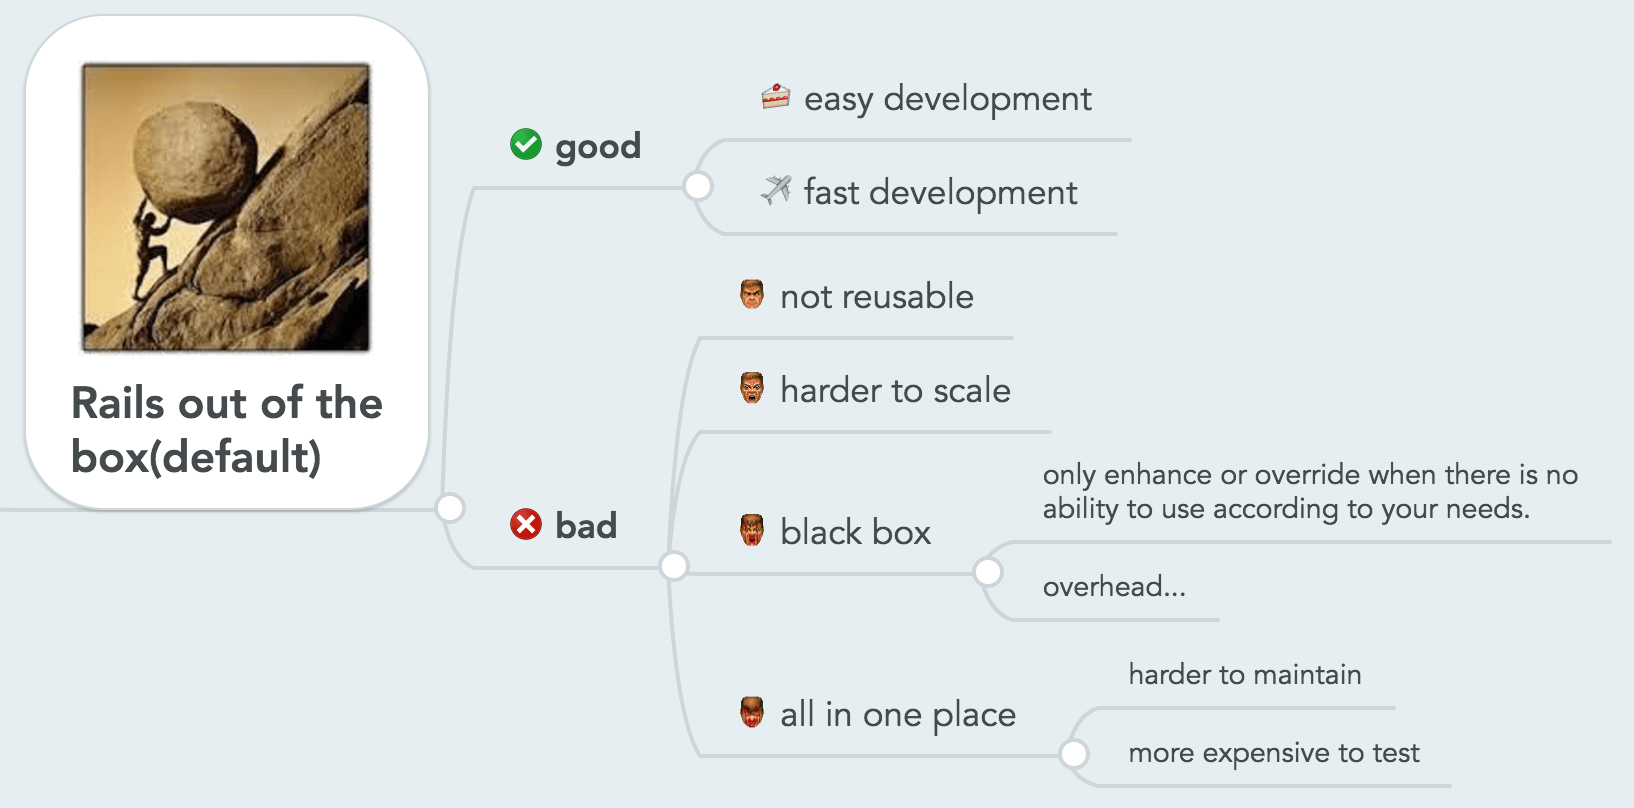 Advantages and Disadvantages of Rails Out Of The Box